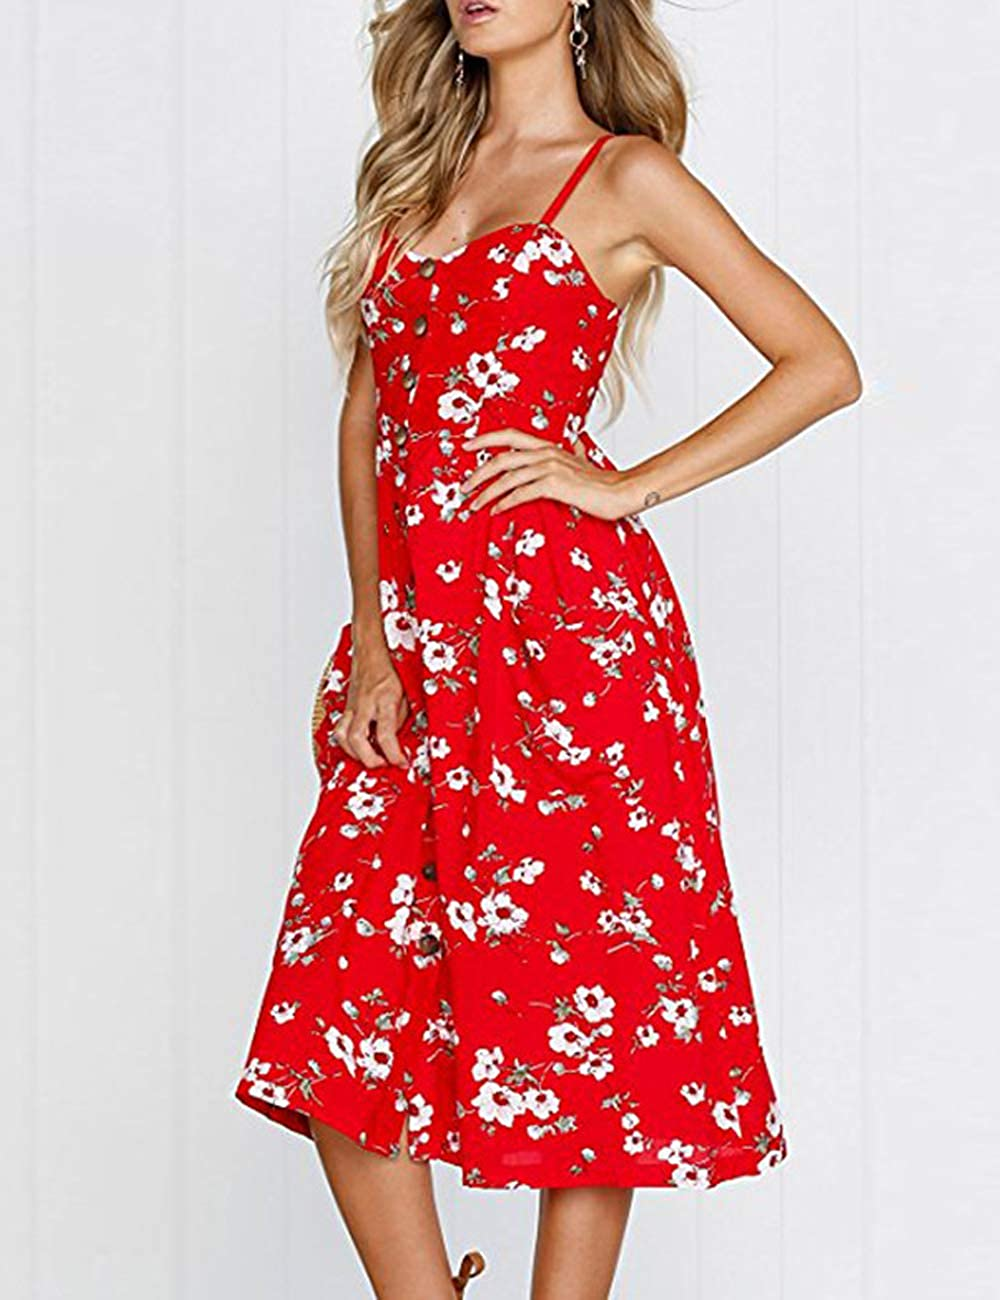 Women Plus Size Sundresses Red Casual Dress with Pockets Red Print